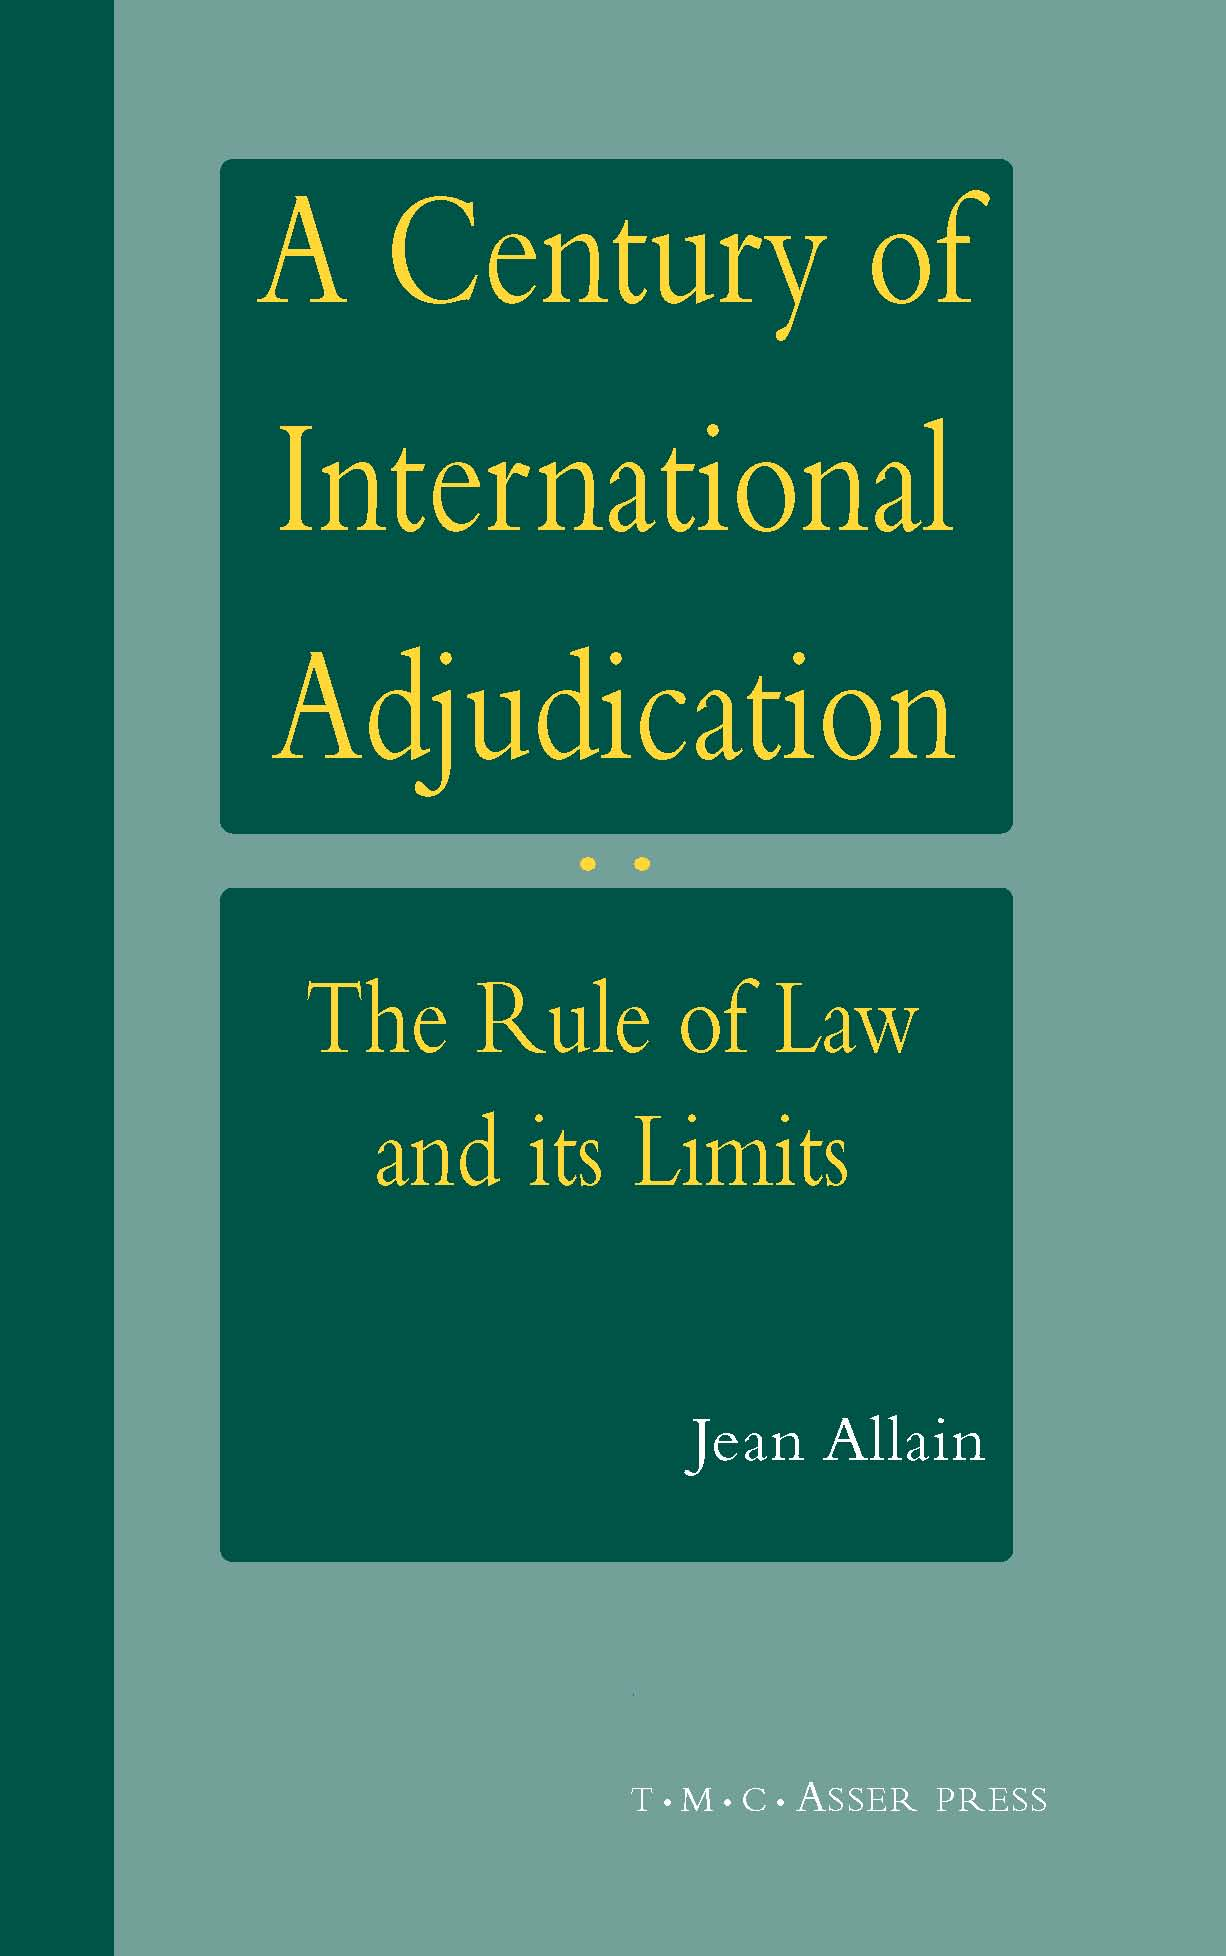 A Century of International Adjudication - The Rule of Law and its Limits